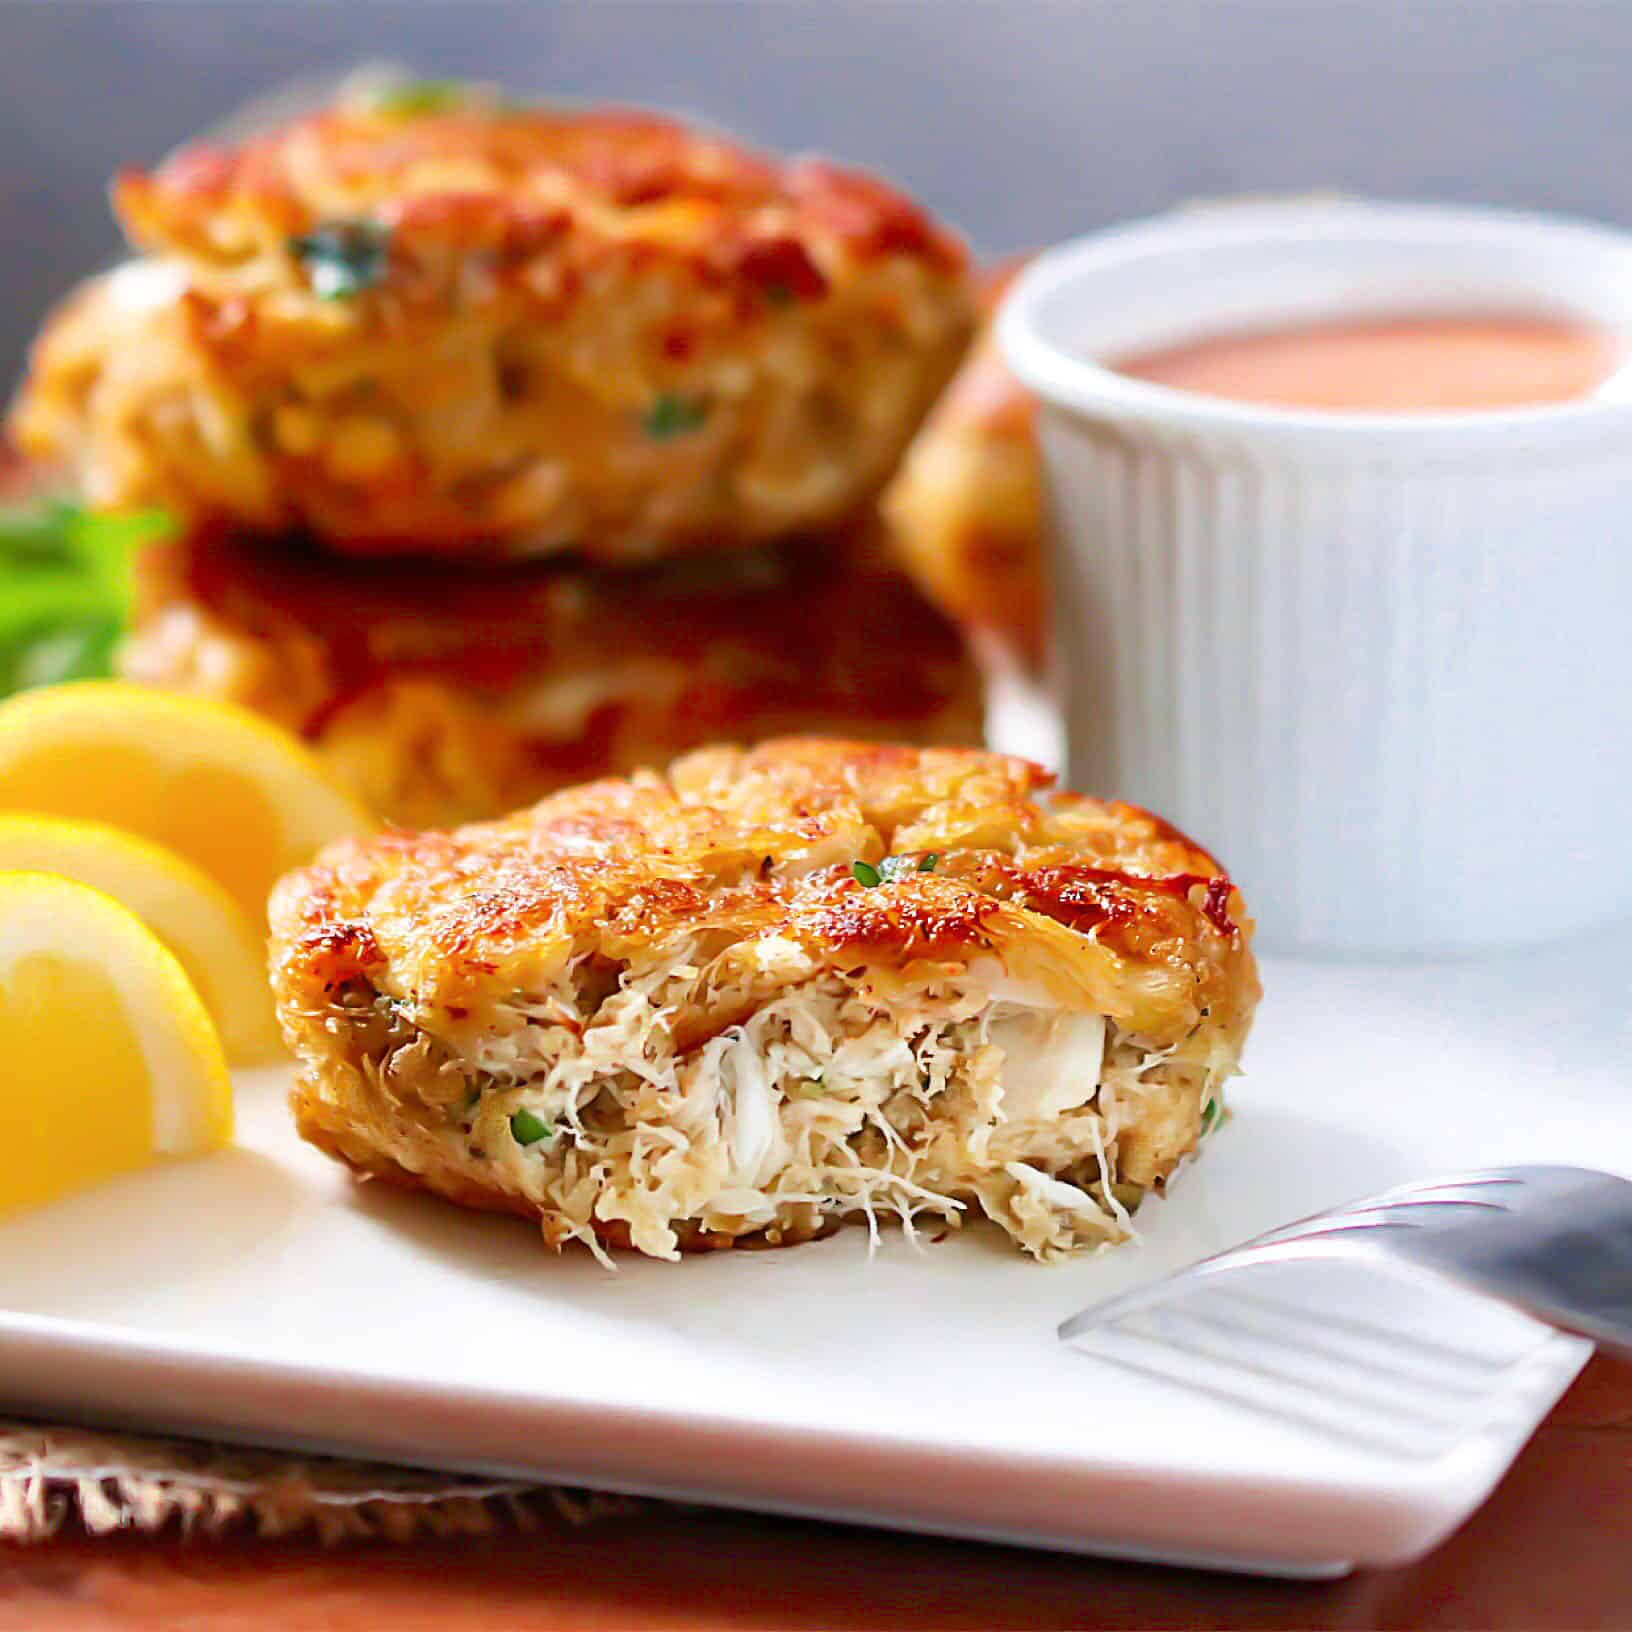 keto, scd, gluten-free crab cakes with sauce